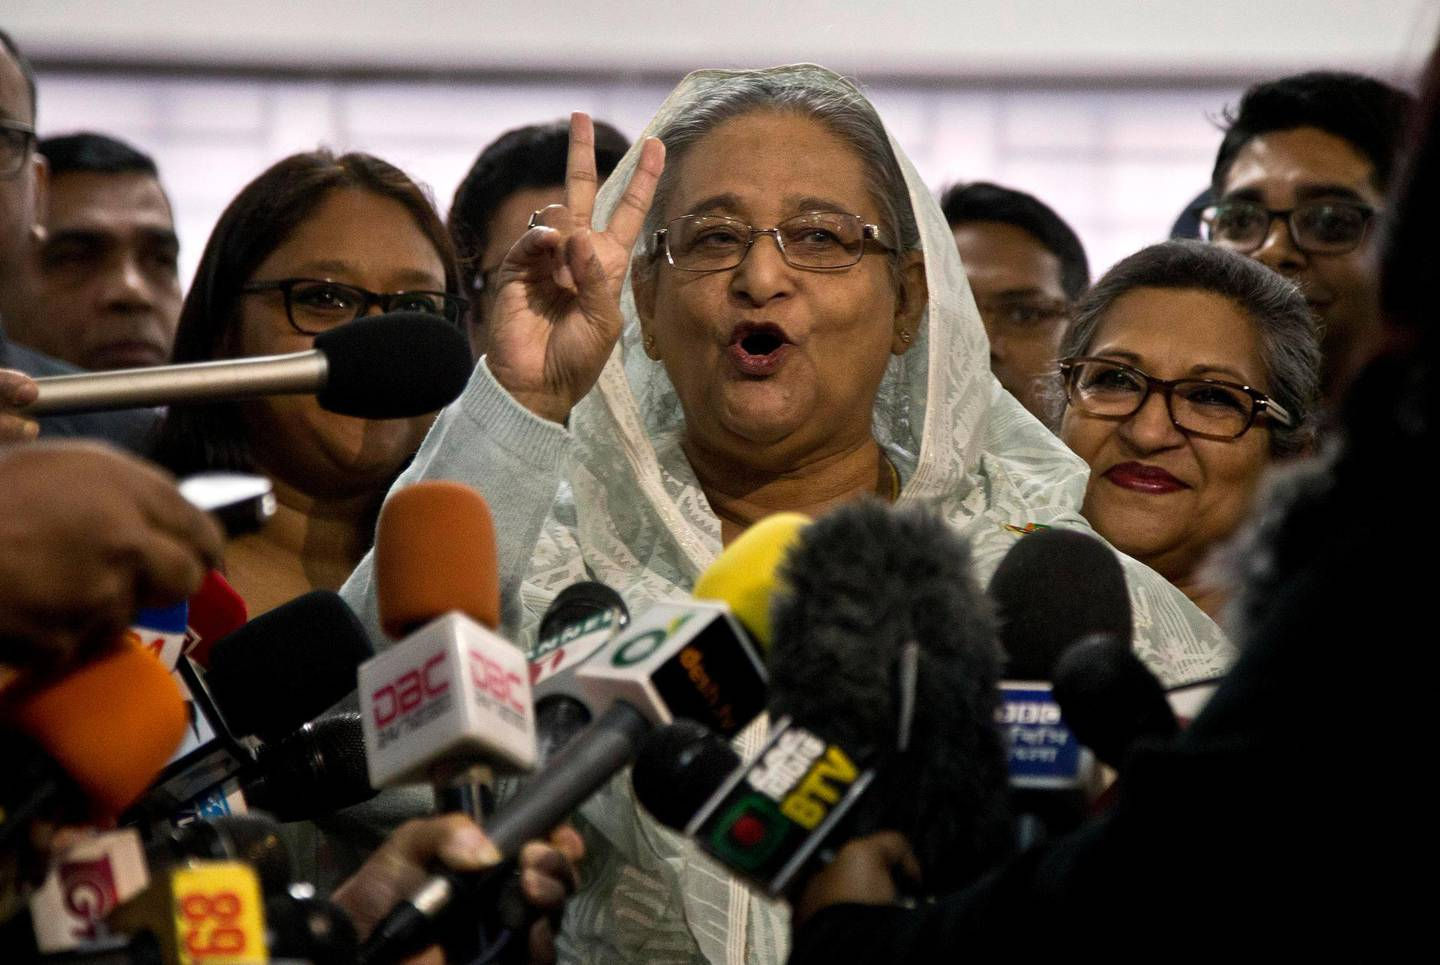 Bangladesh Prime Minister Sheikh Hasina flashes a victory sign as she speaks to the media persons after casting her vote in Dhaka, Bangladesh, Sunday, Dec. 30, 2018. Voting began Sunday in Bangladesh's contentious parliamentary elections, seen as a referendum on what critics call Prime Minister Sheikh Hasina's increasingly authoritarian rule. (AP Photo/Anupam Nath)